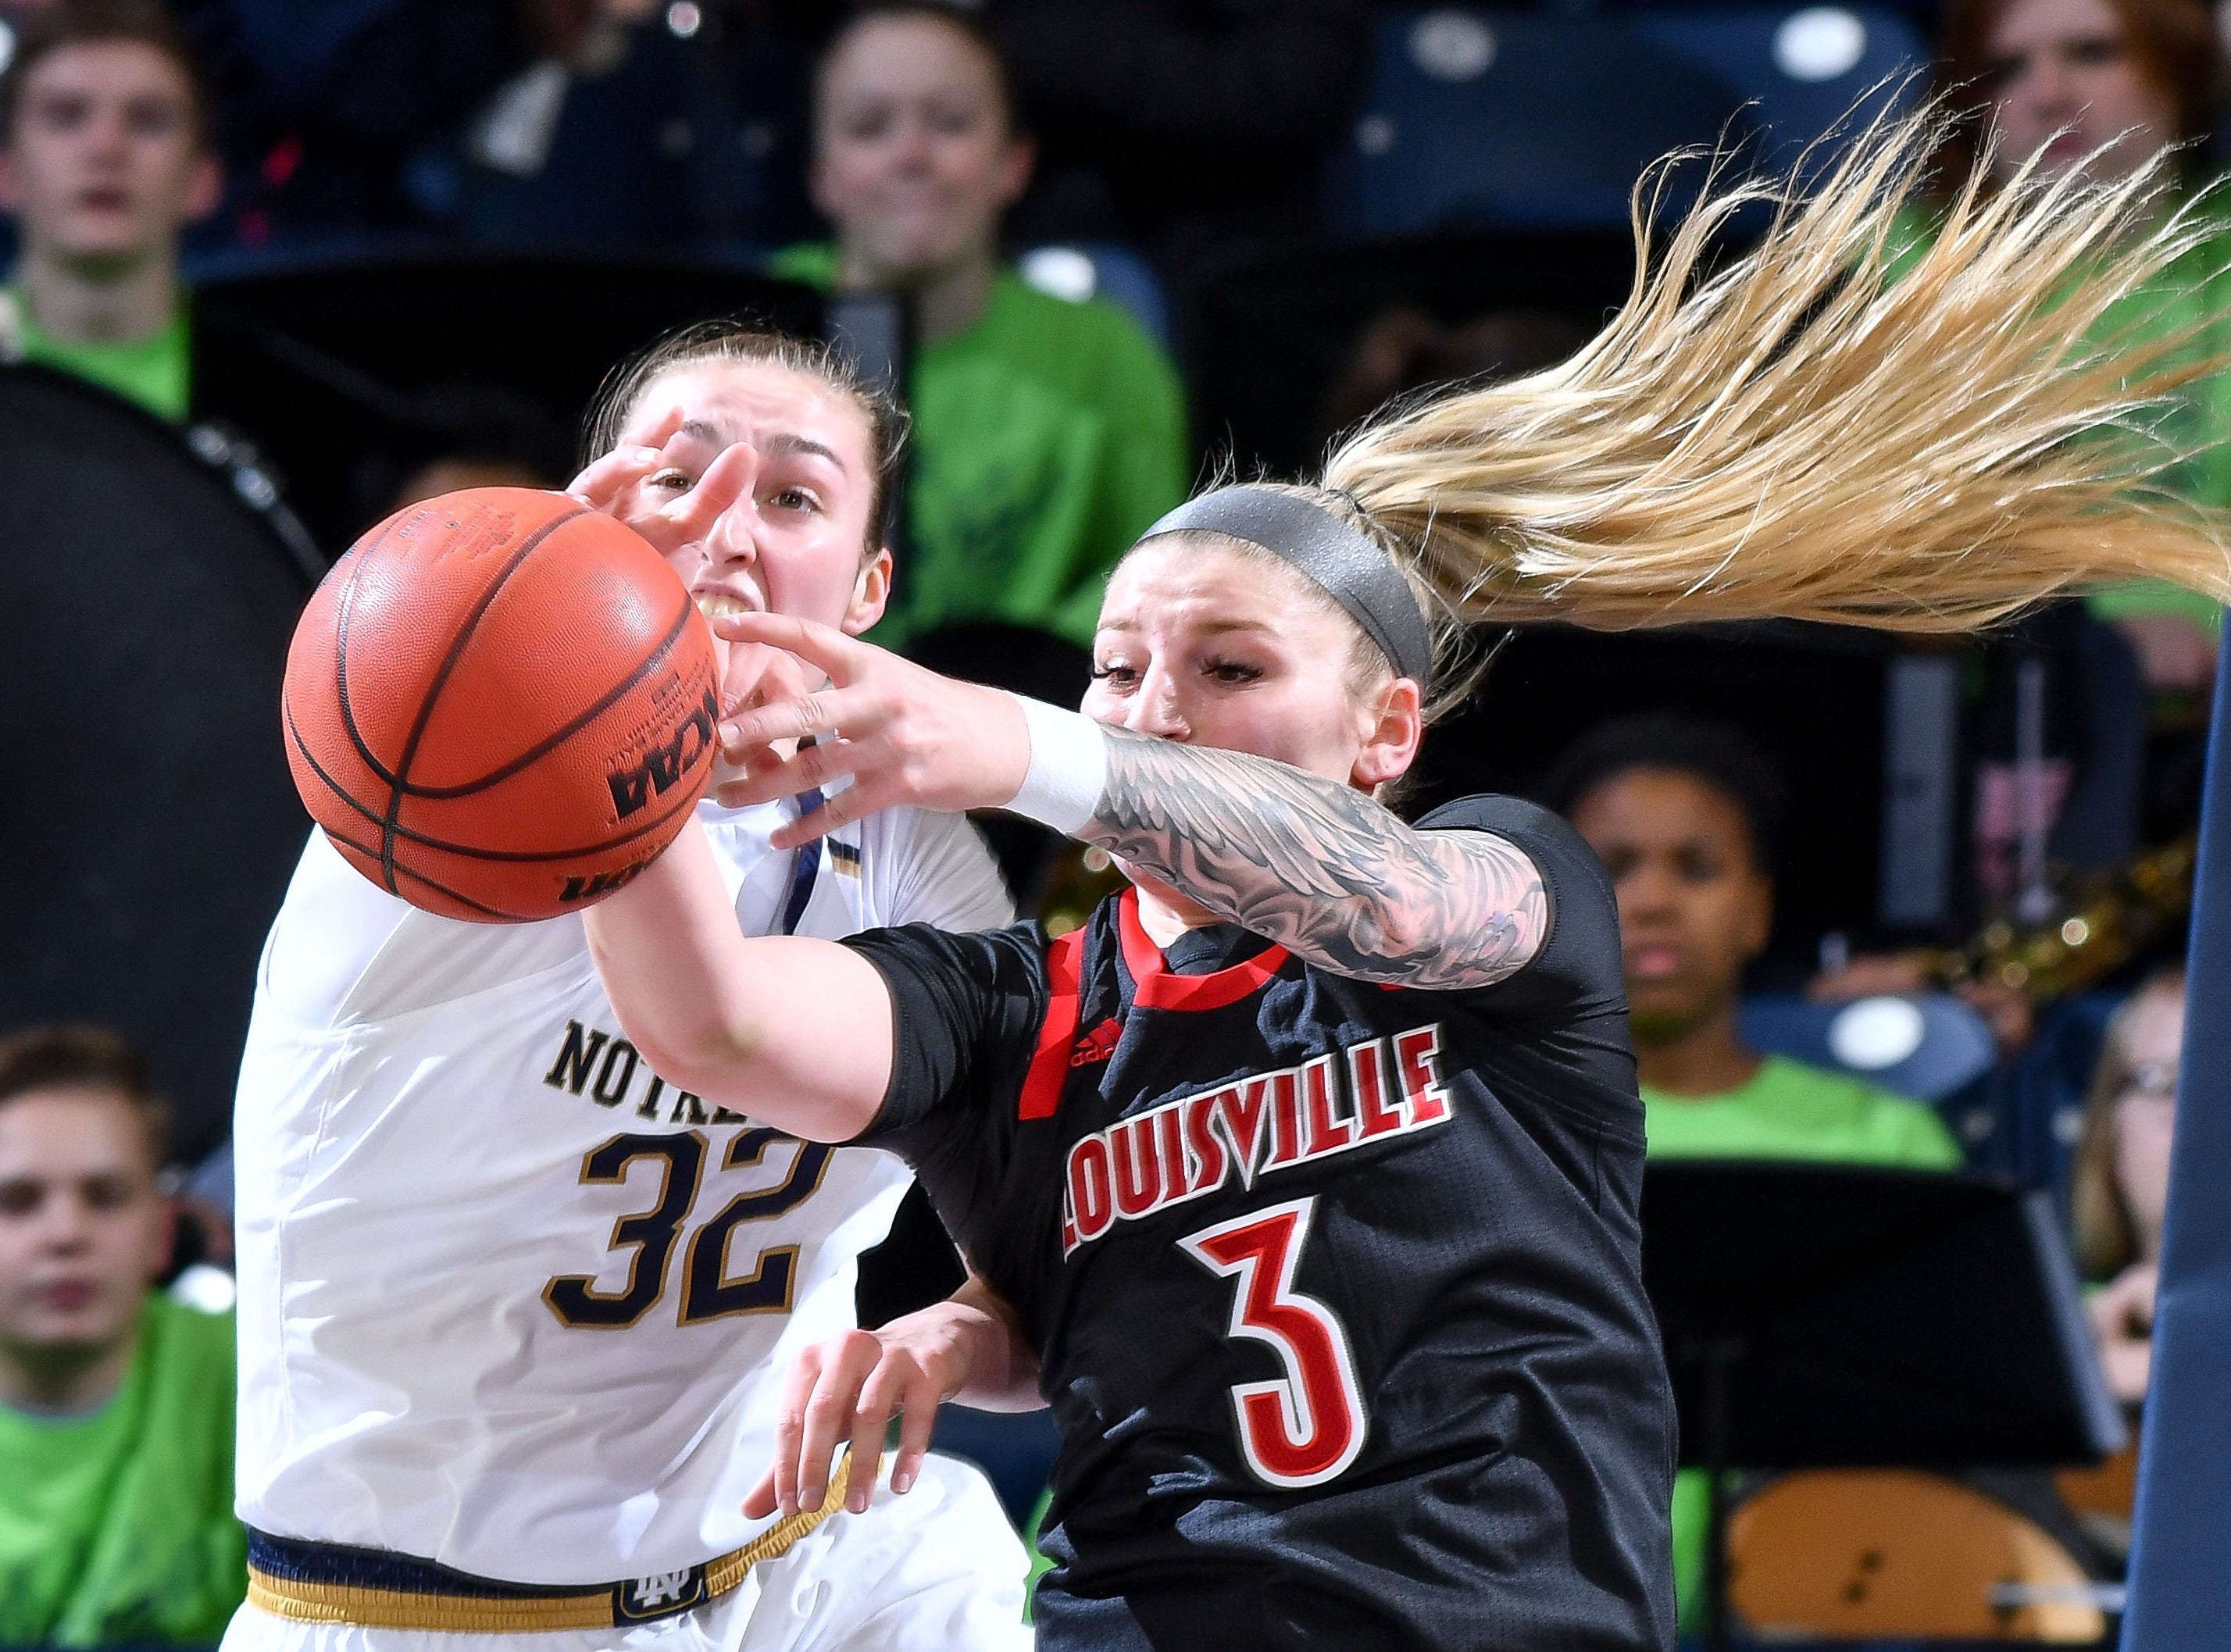 Jan 10, 2019; South Bend, IN, USA; Notre Dame Fighting Irish forward Jessica Shepard (32) and Louisville Cardinals forward Sam Fuehring (3) reach for a rebound in the first half at the Purcell Pavilion. Mandatory Credit: Matt Cashore-USA TODAY Sports